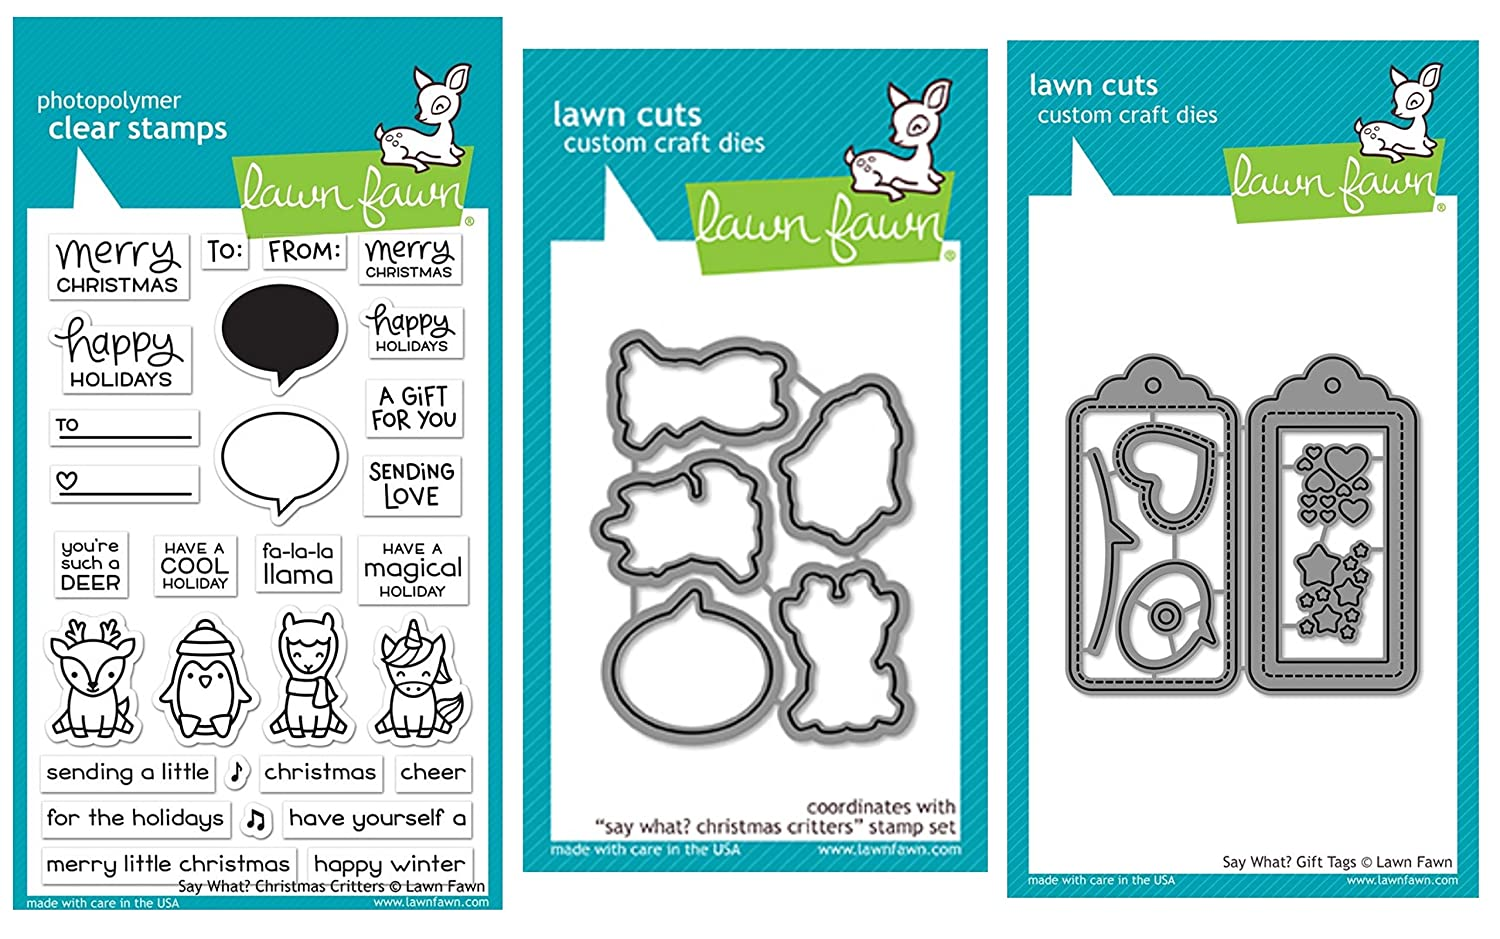 Lawn Fawn Say What? Christmas Critters Clear Stamps, Coordinating Dies and Coordinating Say What Gift Tags, Bundle of Three Items (LF1778, LF1779, LF1780)